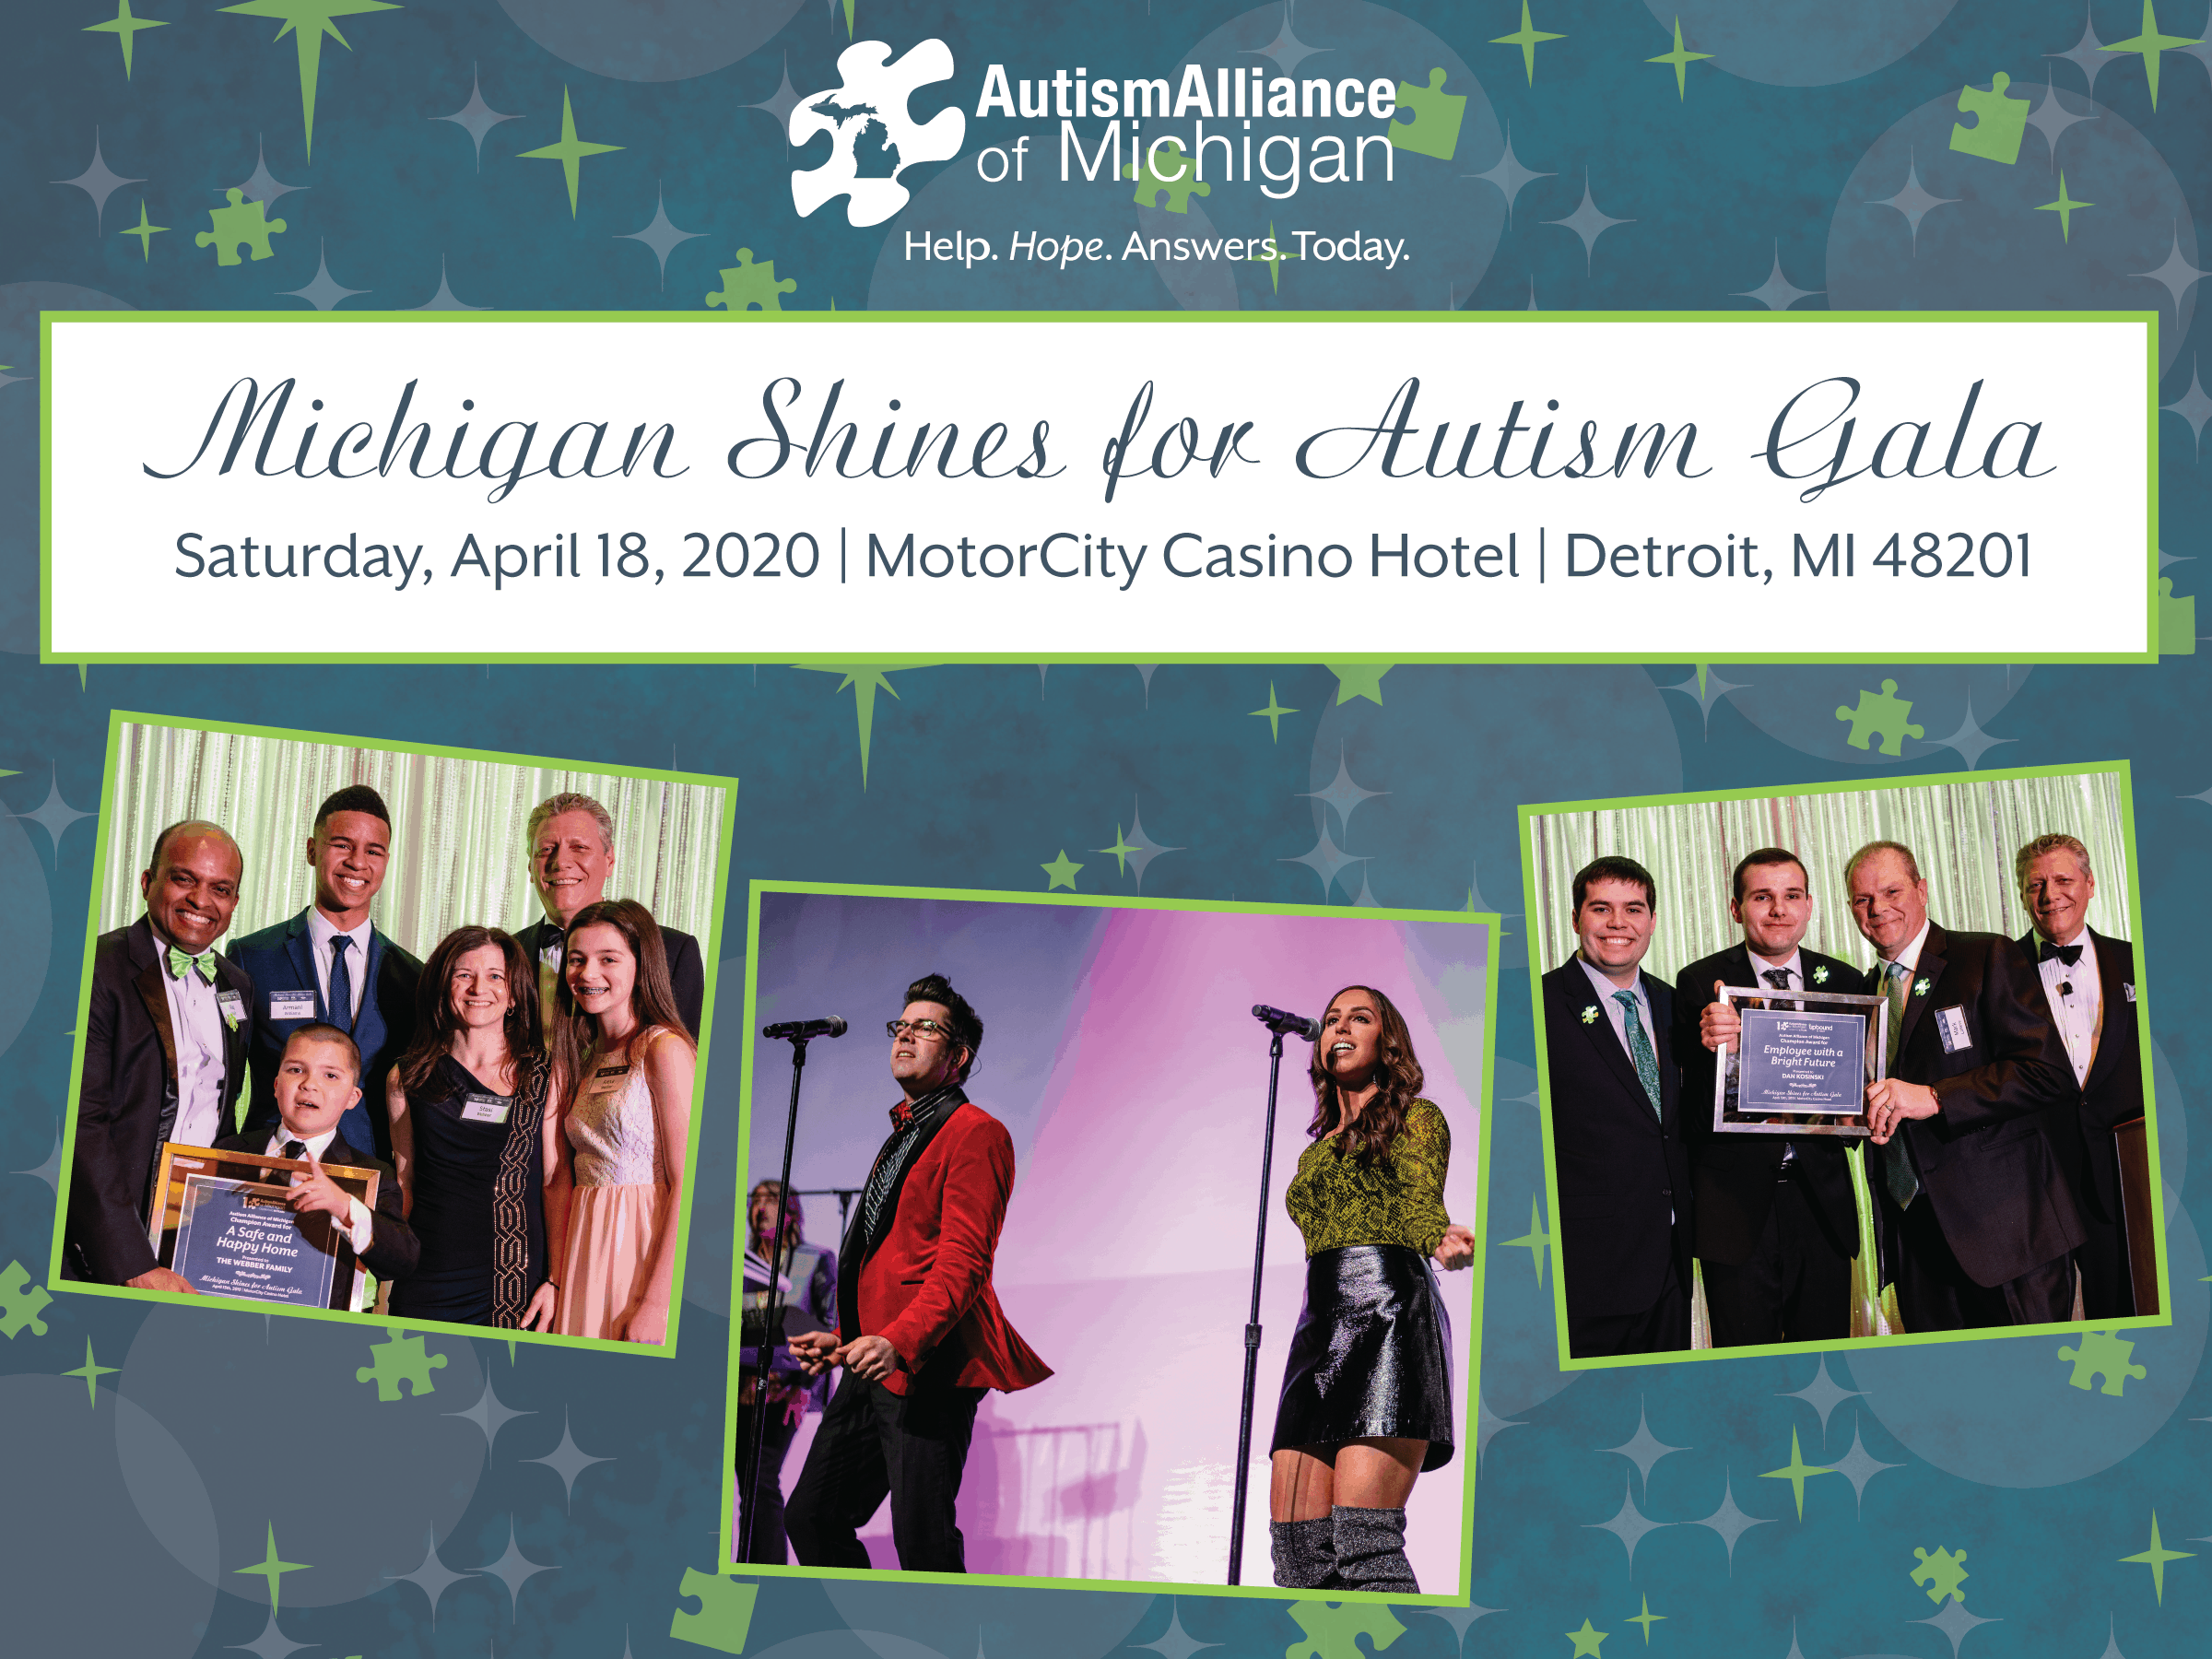 Ann Arbor Events April 2020.2020 Michigan Shines For Autism Gala Autism Alliance Of